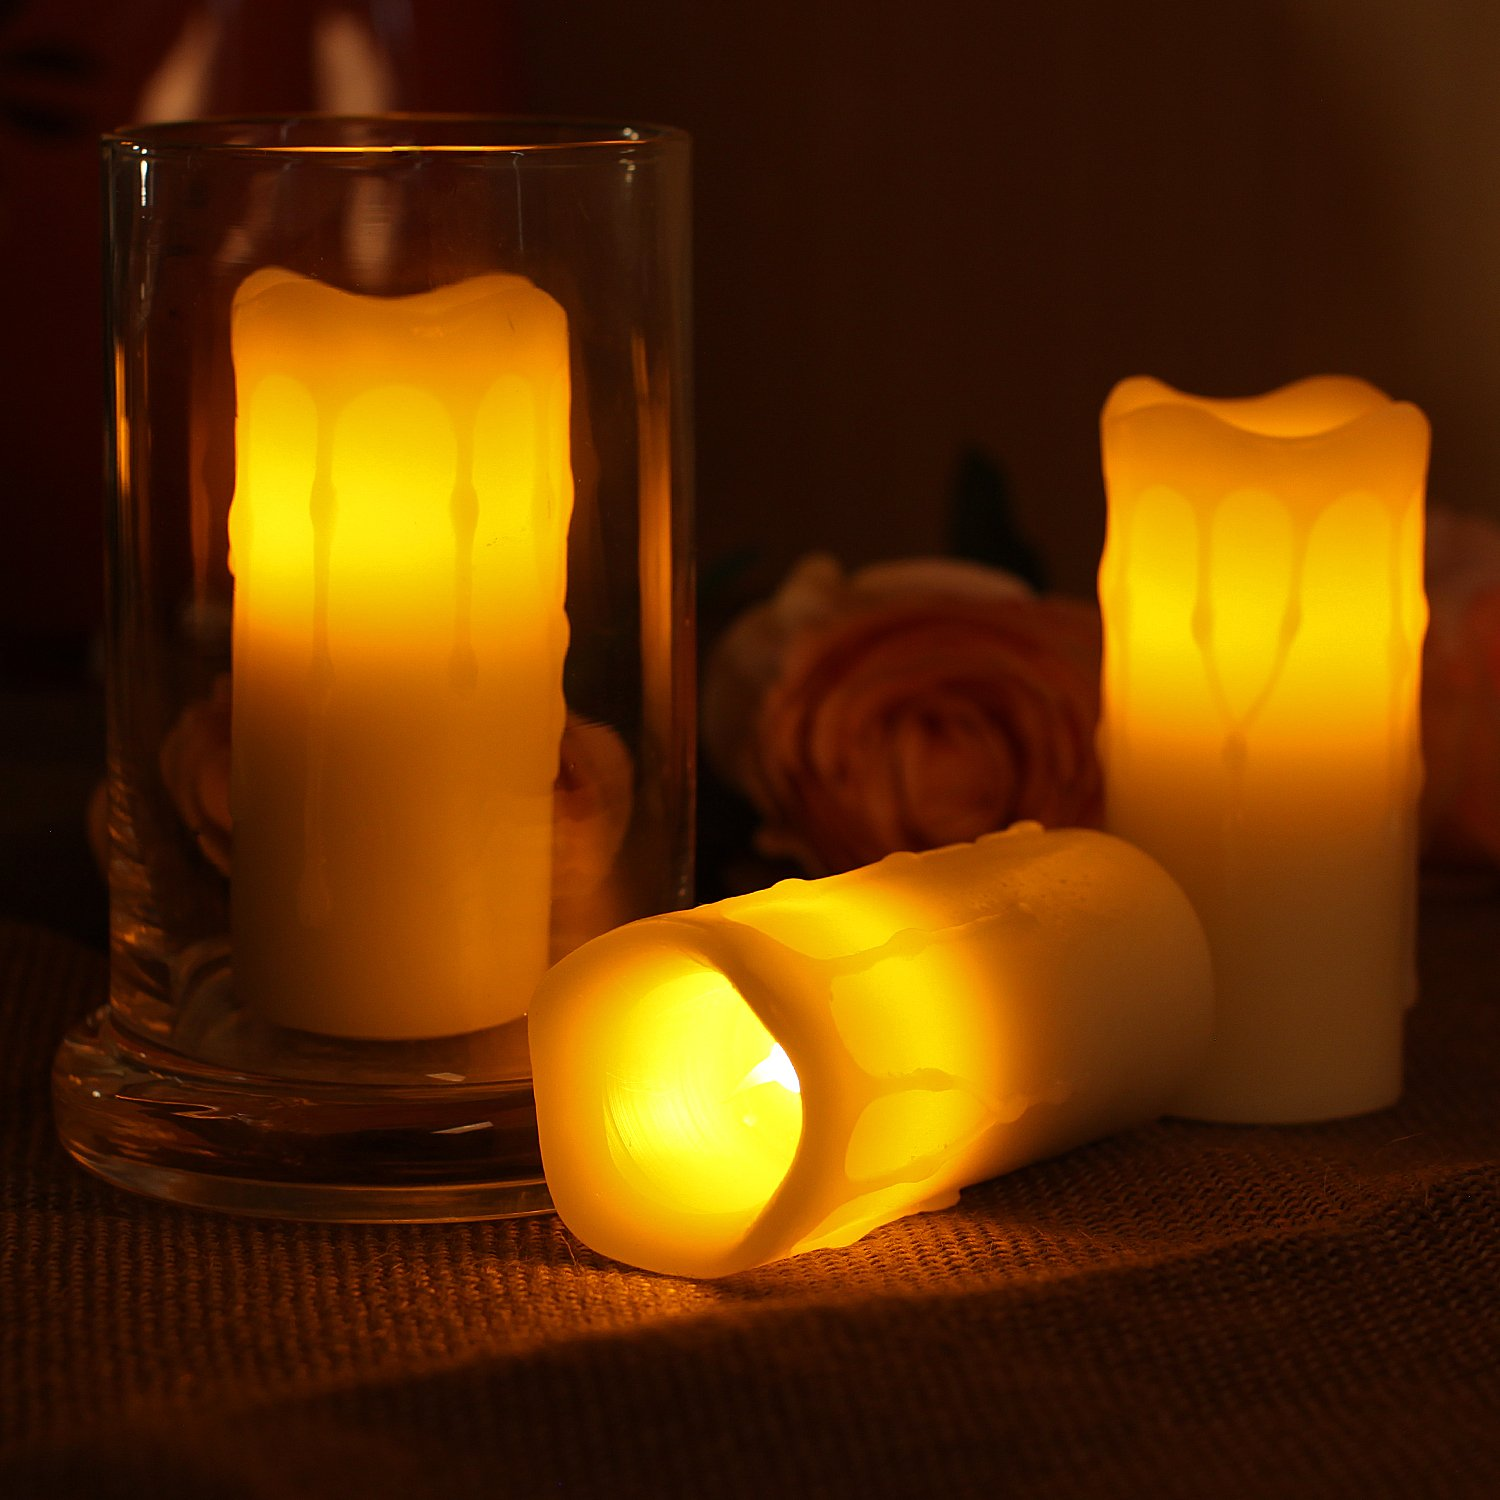 Greluna LED Votive Candles,Dripping Wax Flameless Votive Candle with Timer,Battery-Operated,Ivory,1.75x4,Pack of 3